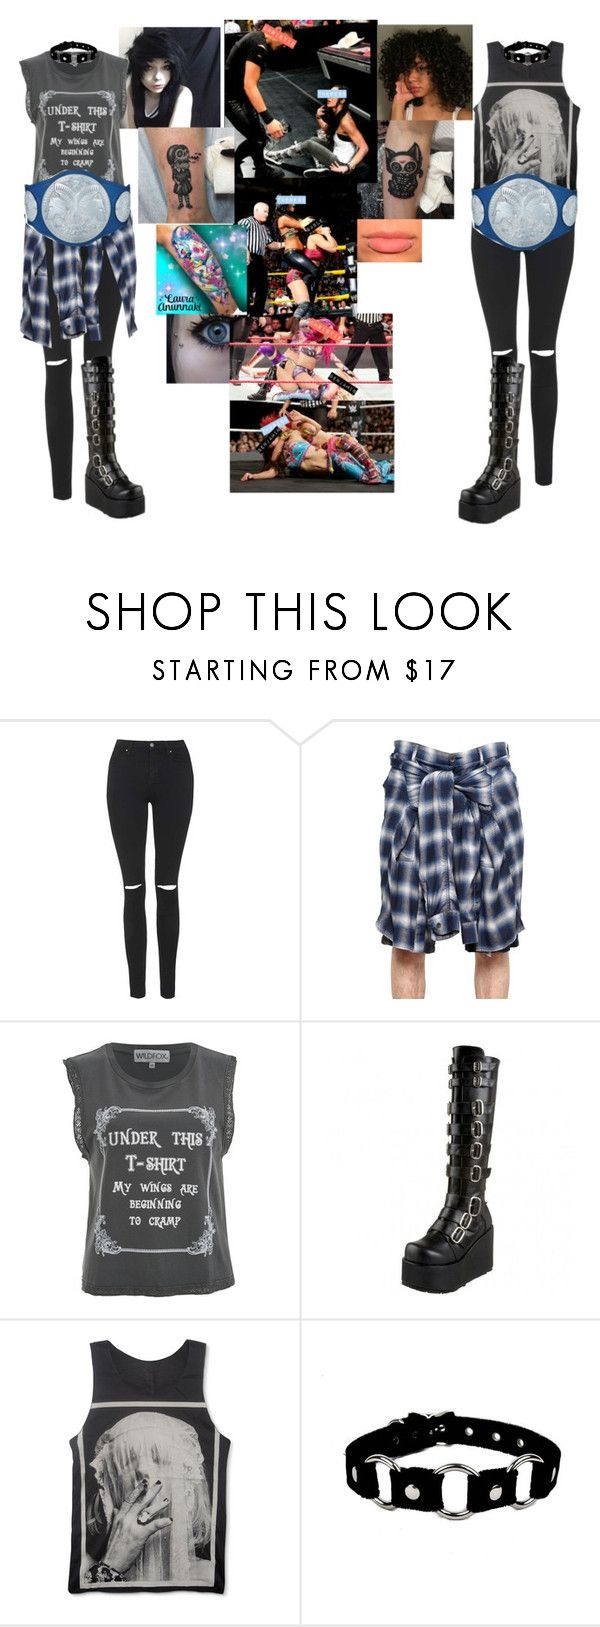 """""""💵🖕🏾The New Acolytes🖕🏾💵-Royal Rumble⚫️Vs Benjamin And Gable"""" by wokenhardies ❤ liked on Polyvore featuring Topshop, Maison Mihara Yasuhiro, Wildfox and Concord"""